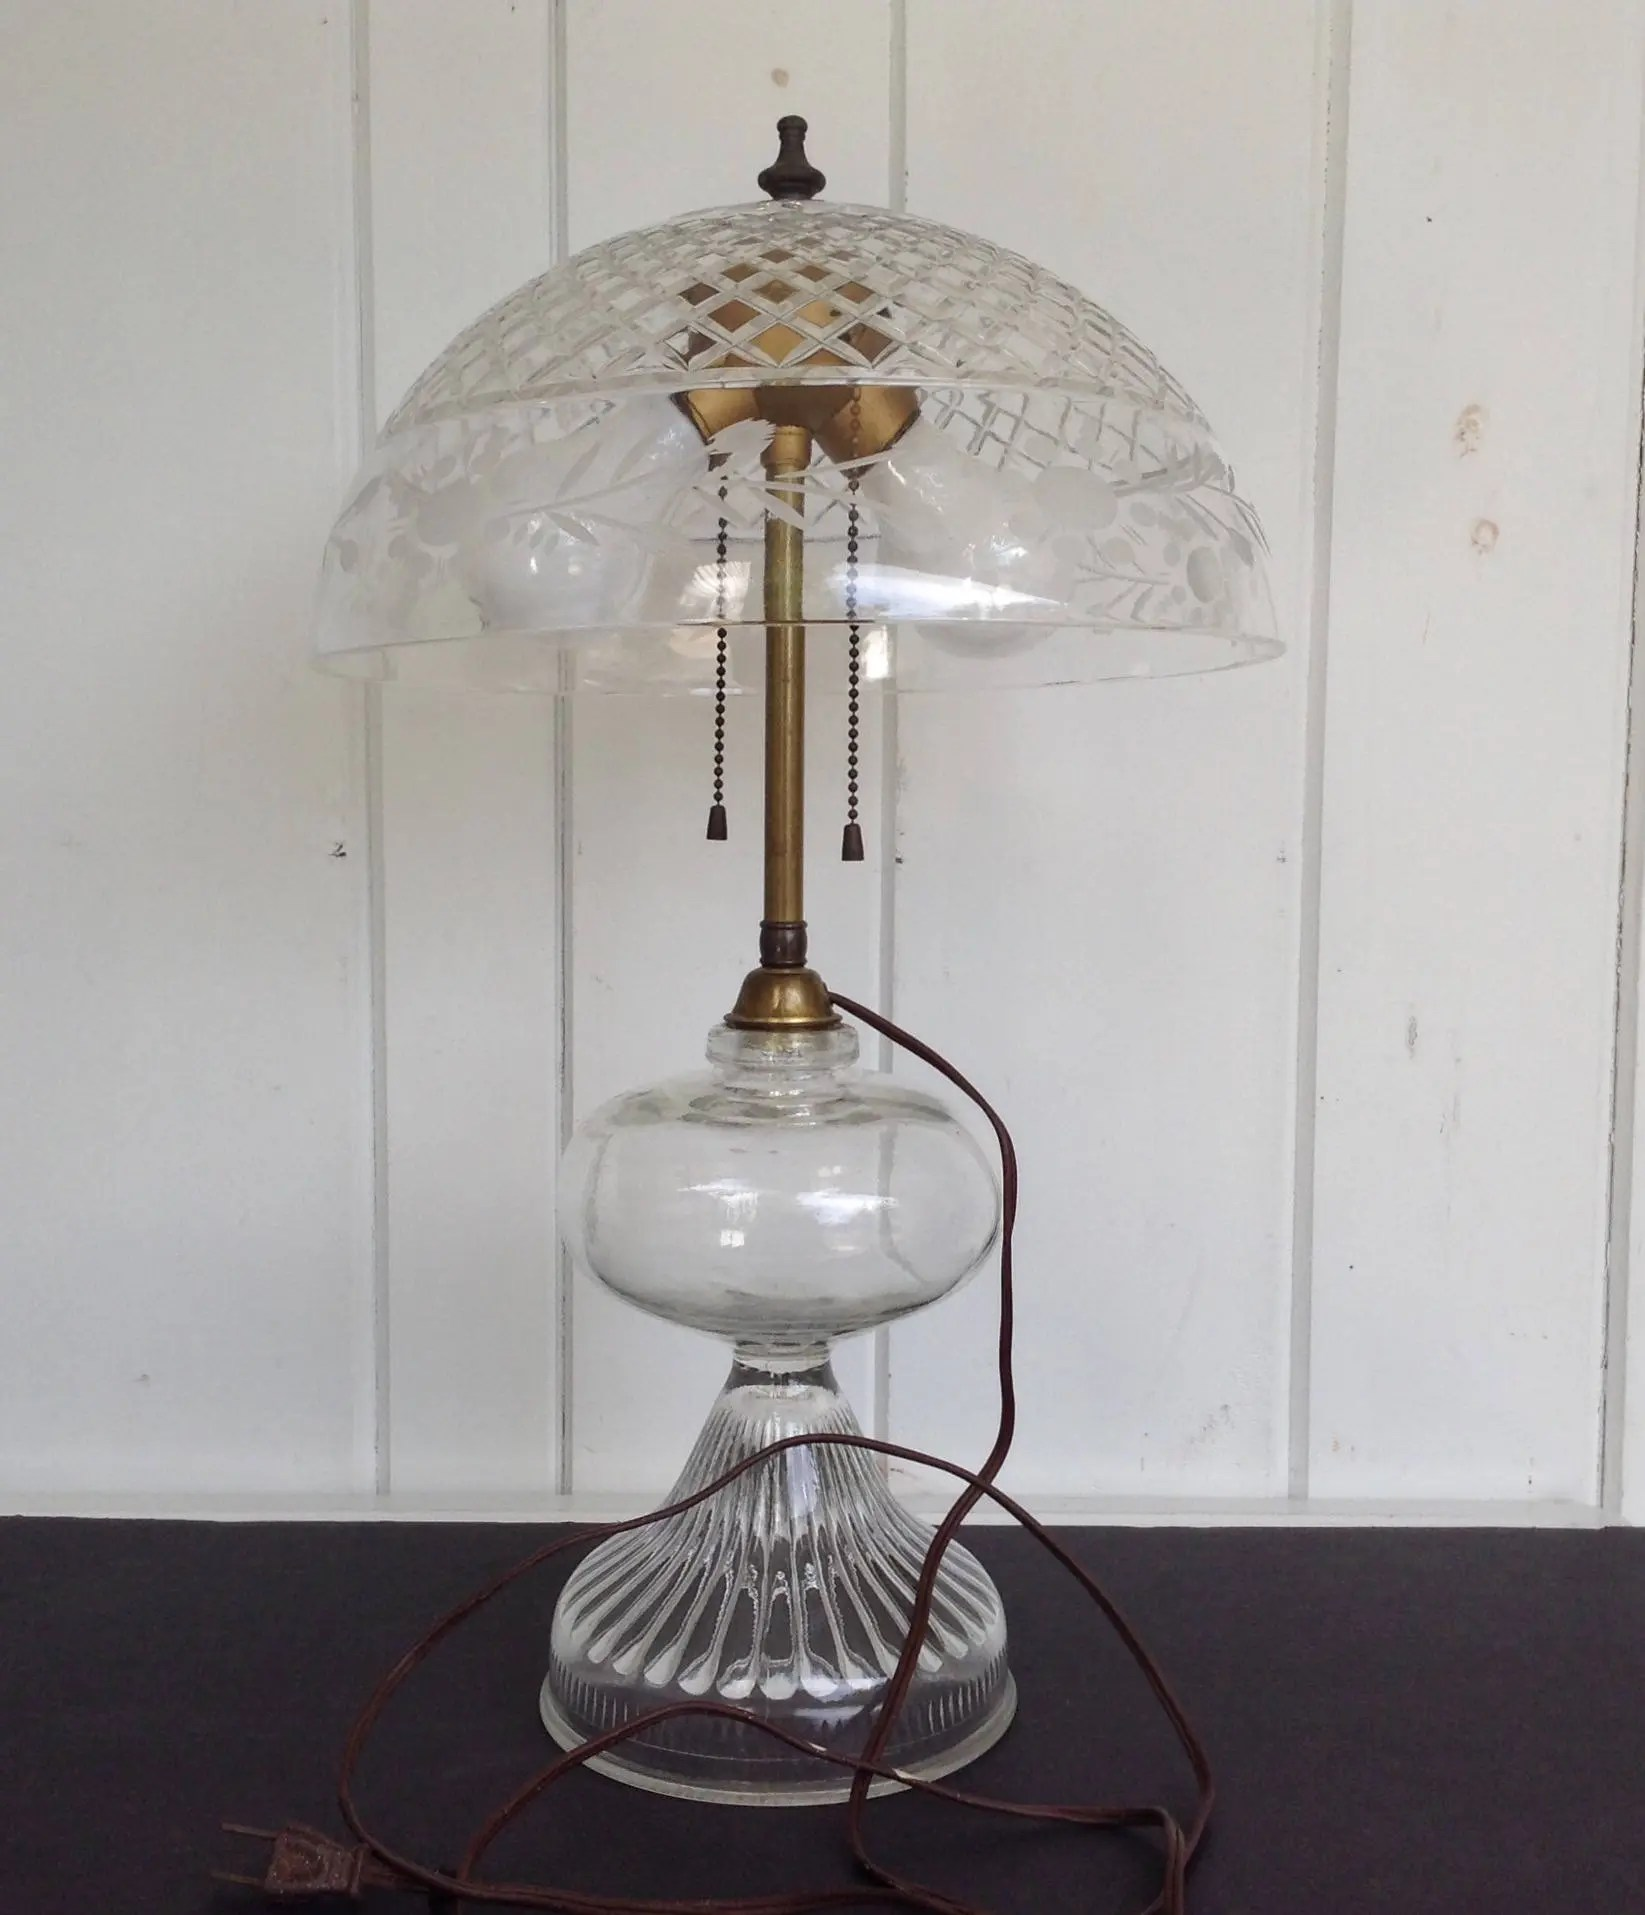 Glass Lamp Bowl Vintage Electrified Clear Oil Lamp With Cut Glass Bowl Shade Globe Electric